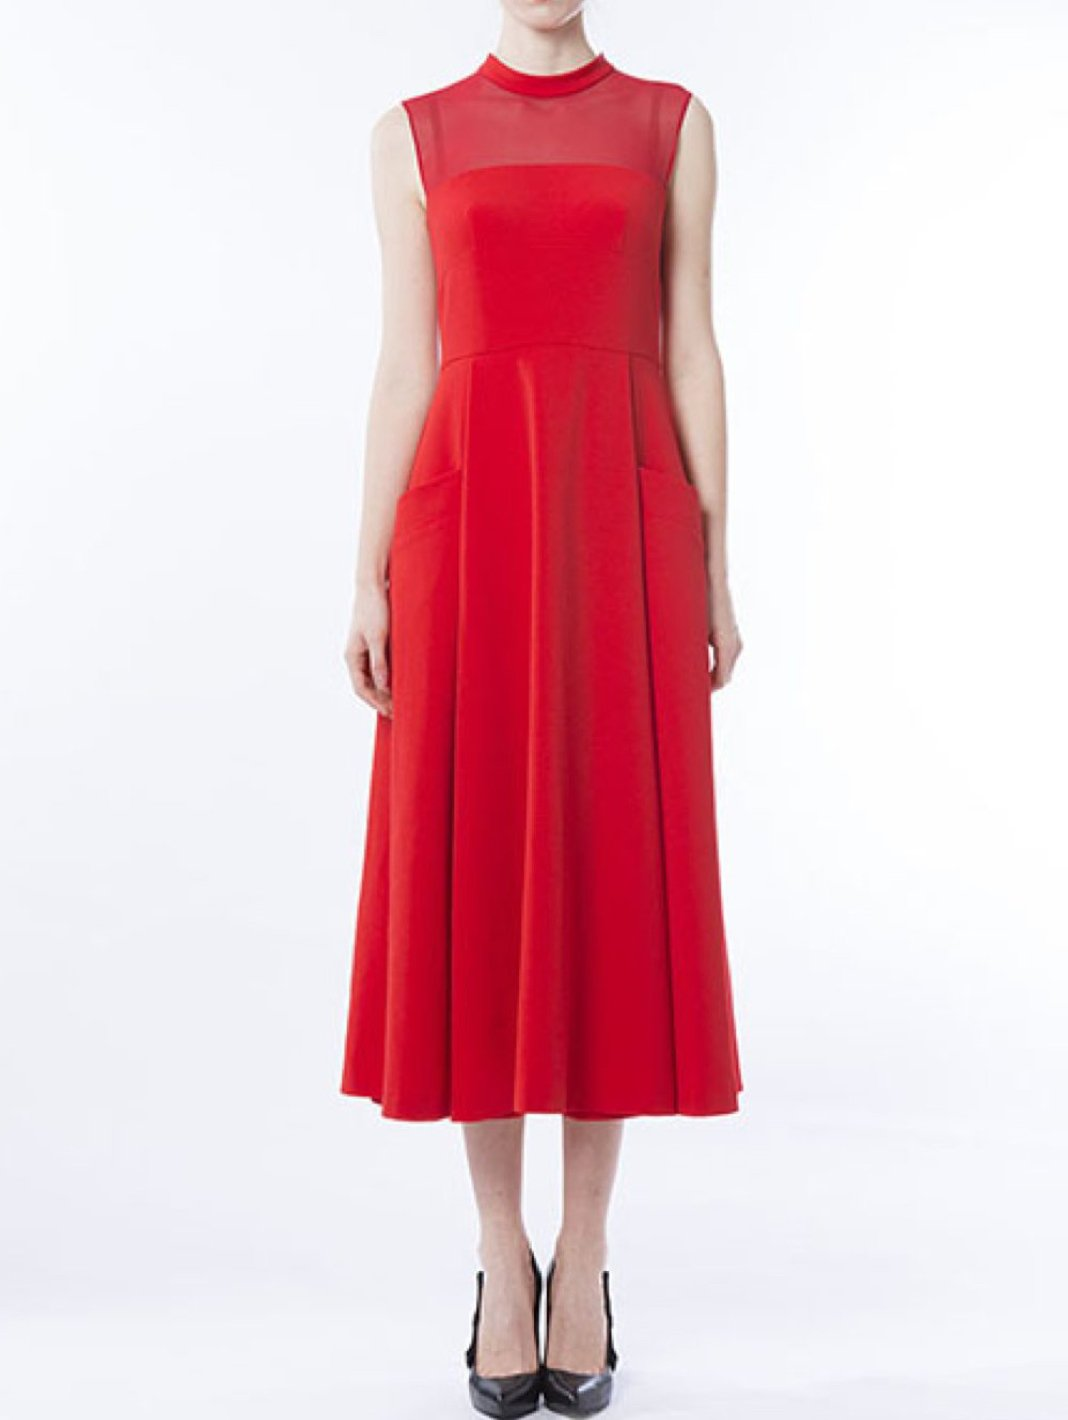 Midi Flared Dress - The Bobby Boga